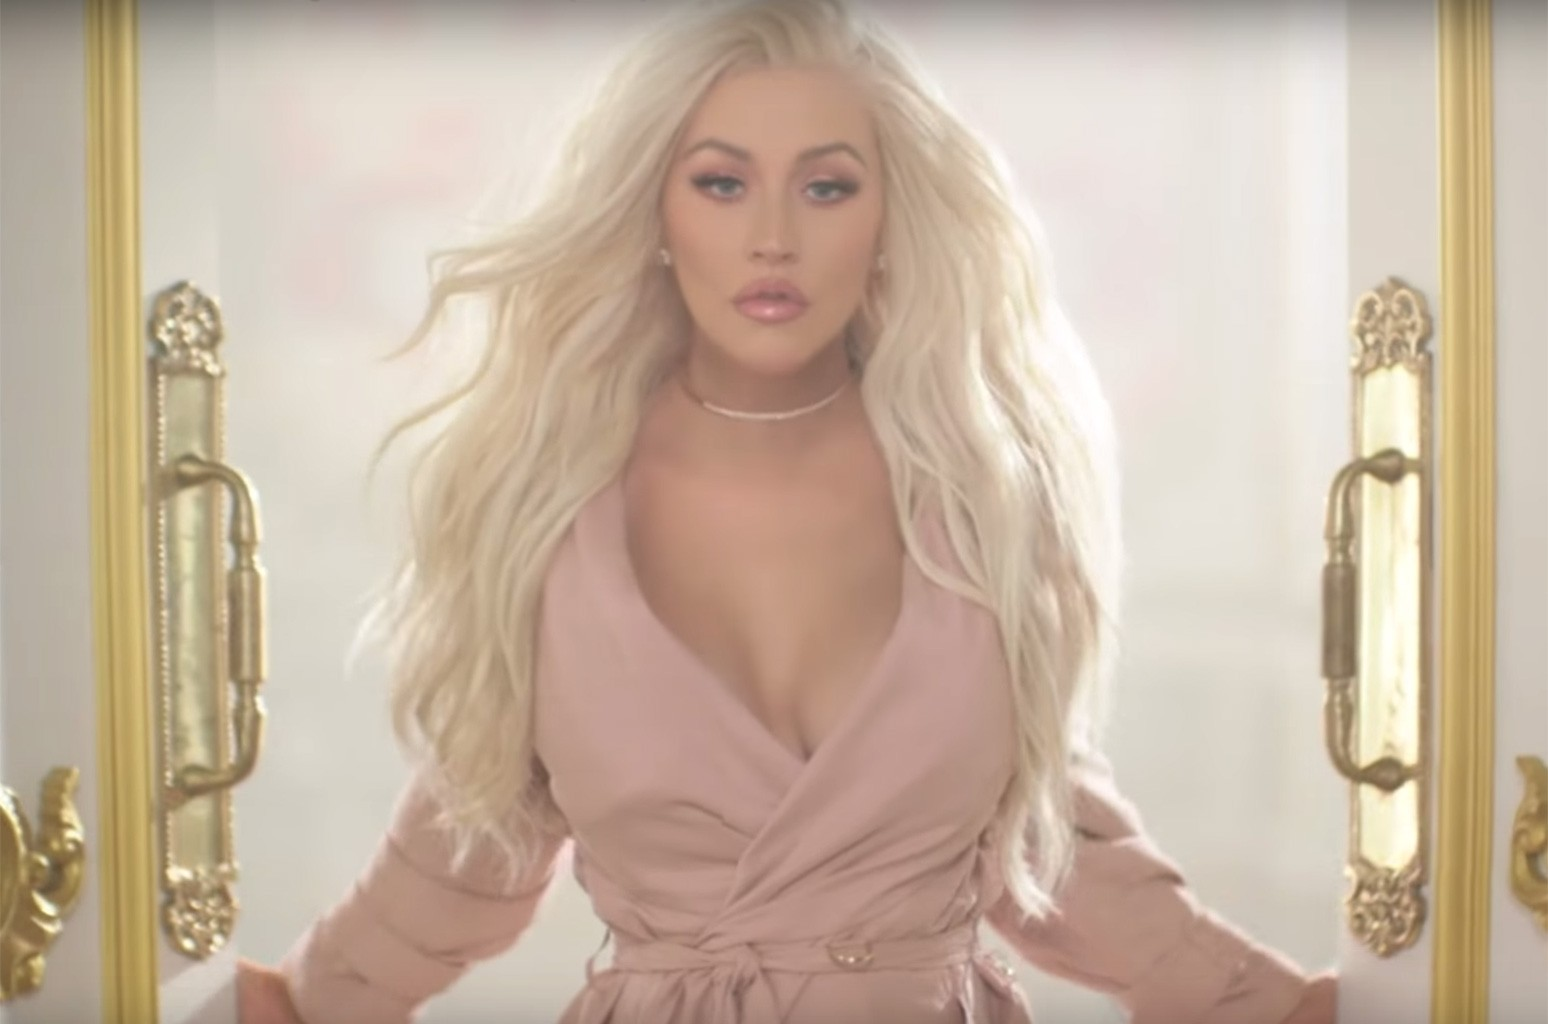 Christina Aguilera 'Definition' New Fragrance commercial